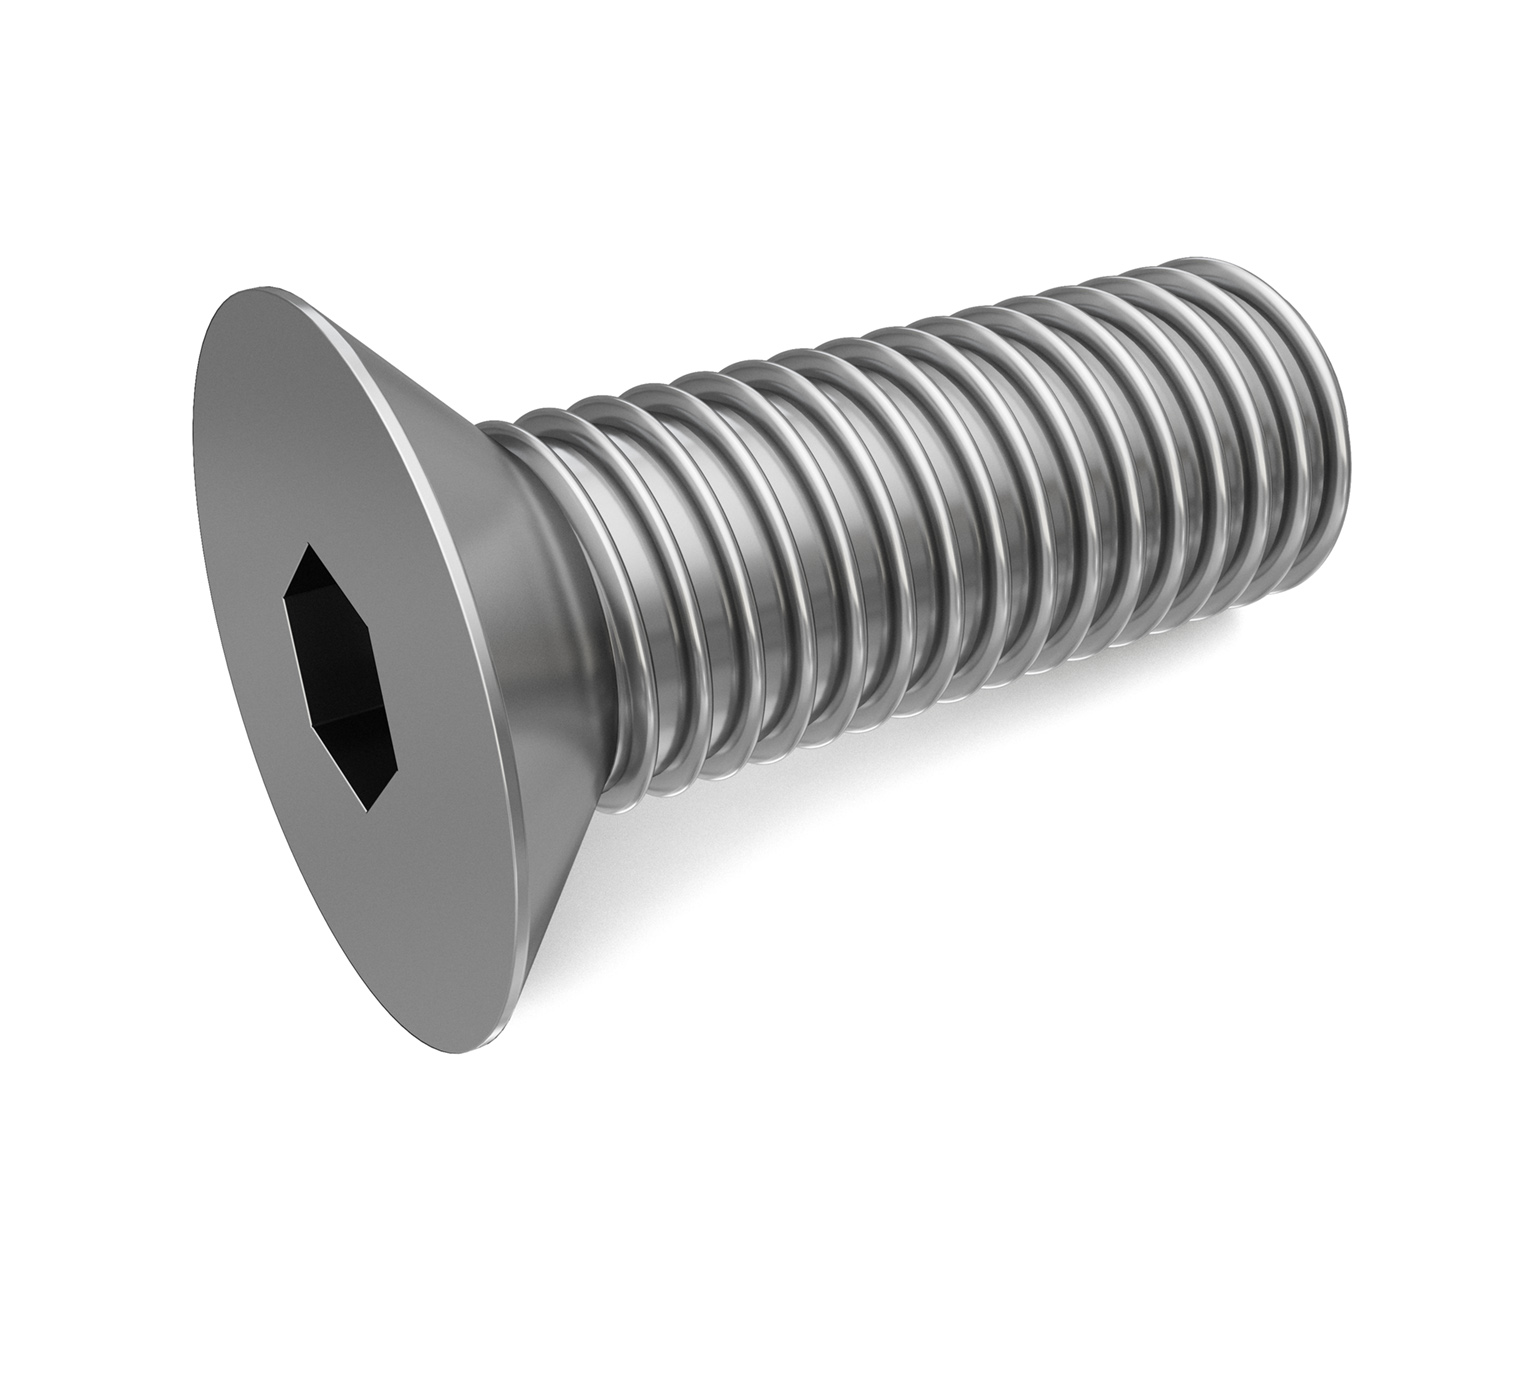 222692 Stainless Steel Screw - M8 Thread x 1.25 in alt 1